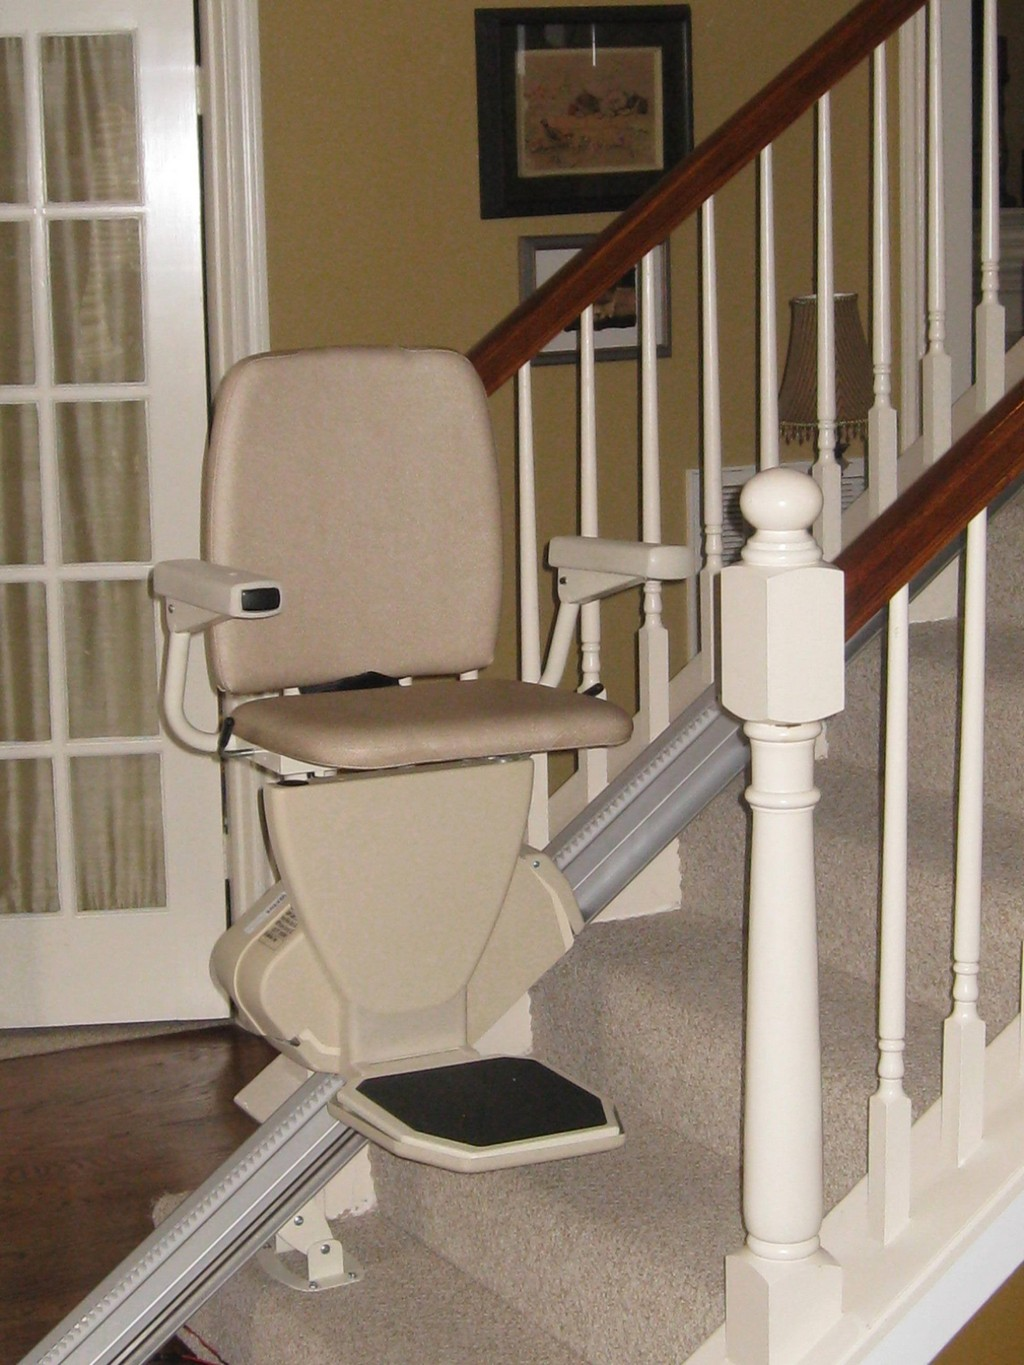 acorn superglide stair lift, acorn stairlift, stannah stairlifts service us, concord liberty stair lift manual